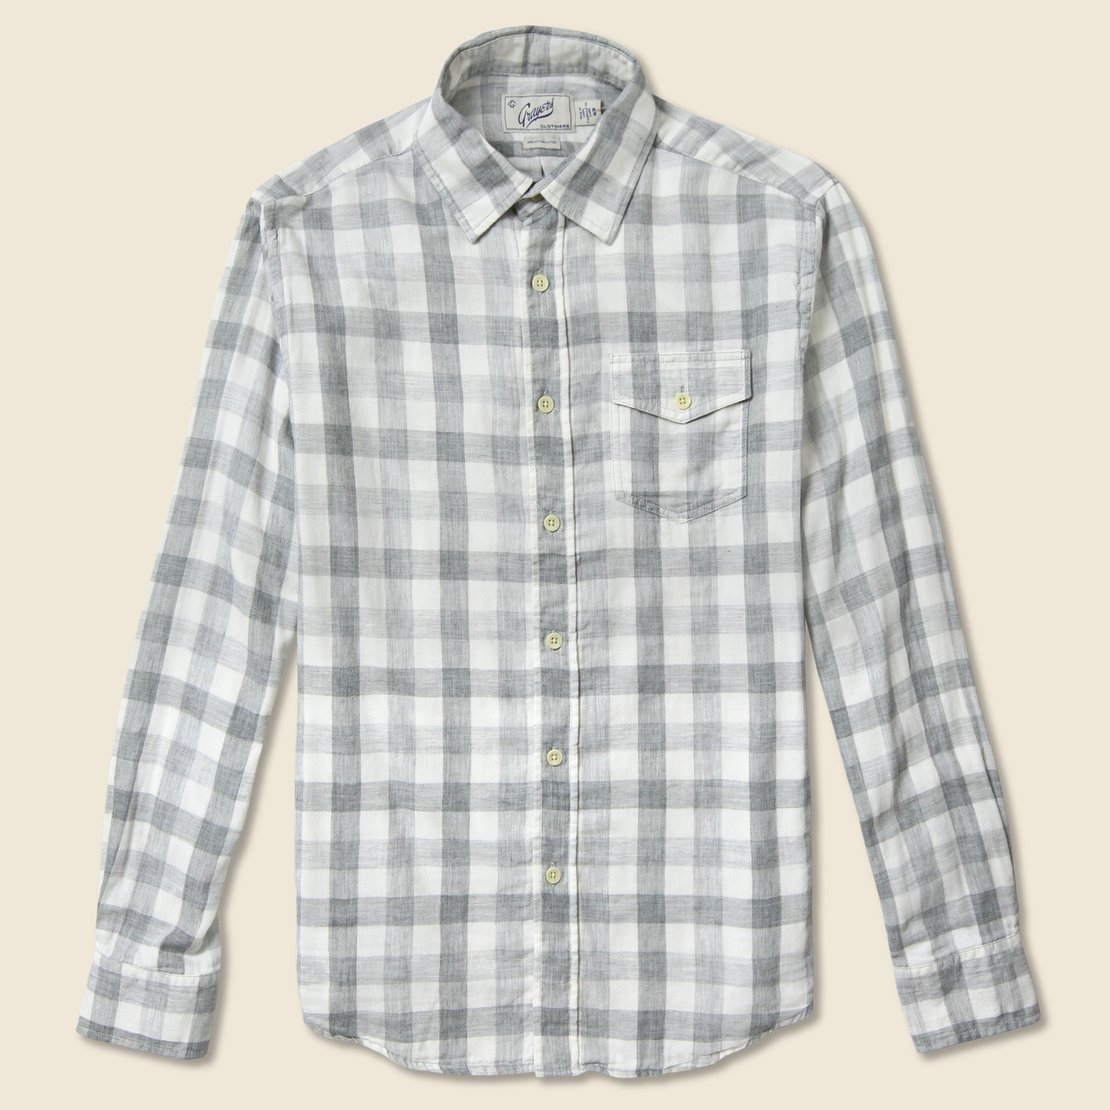 Grayers Durham Gingham Double Cloth Shirt - Heather Grey